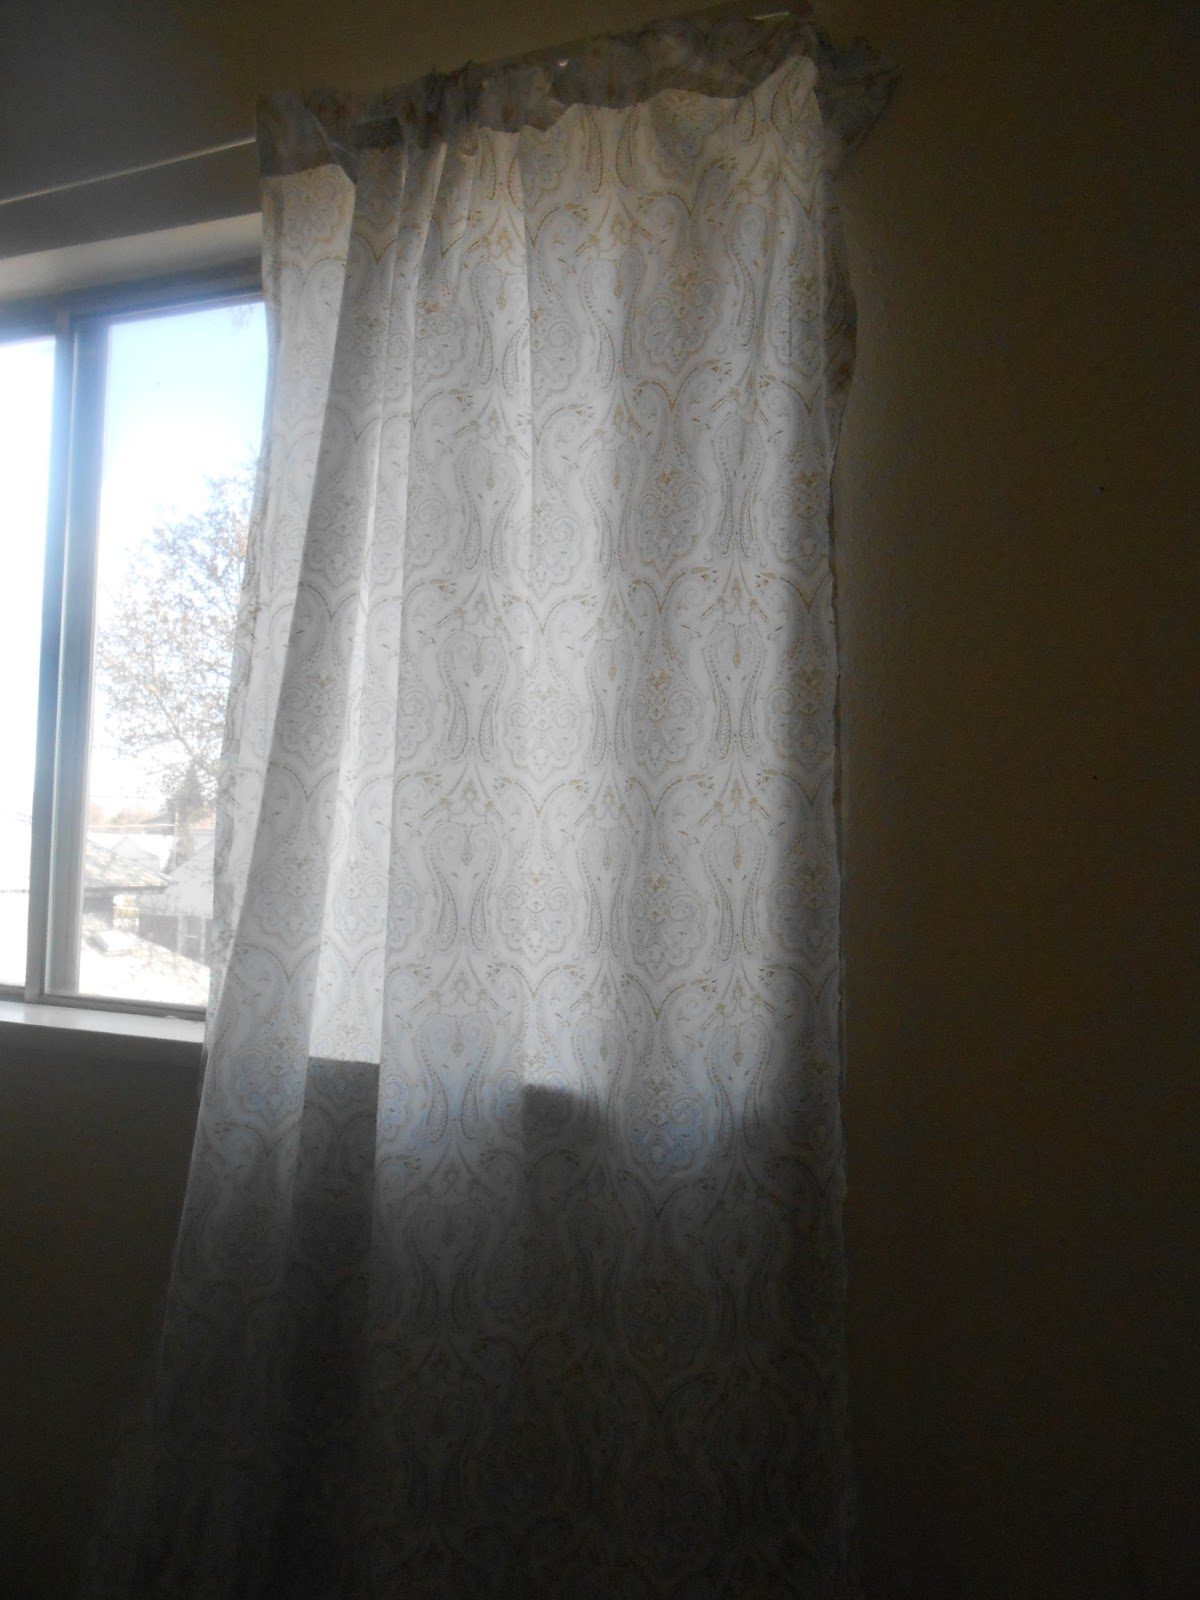 Recipes Crafts And Life Diy Curtains Out Of Bed Sheets No Sew